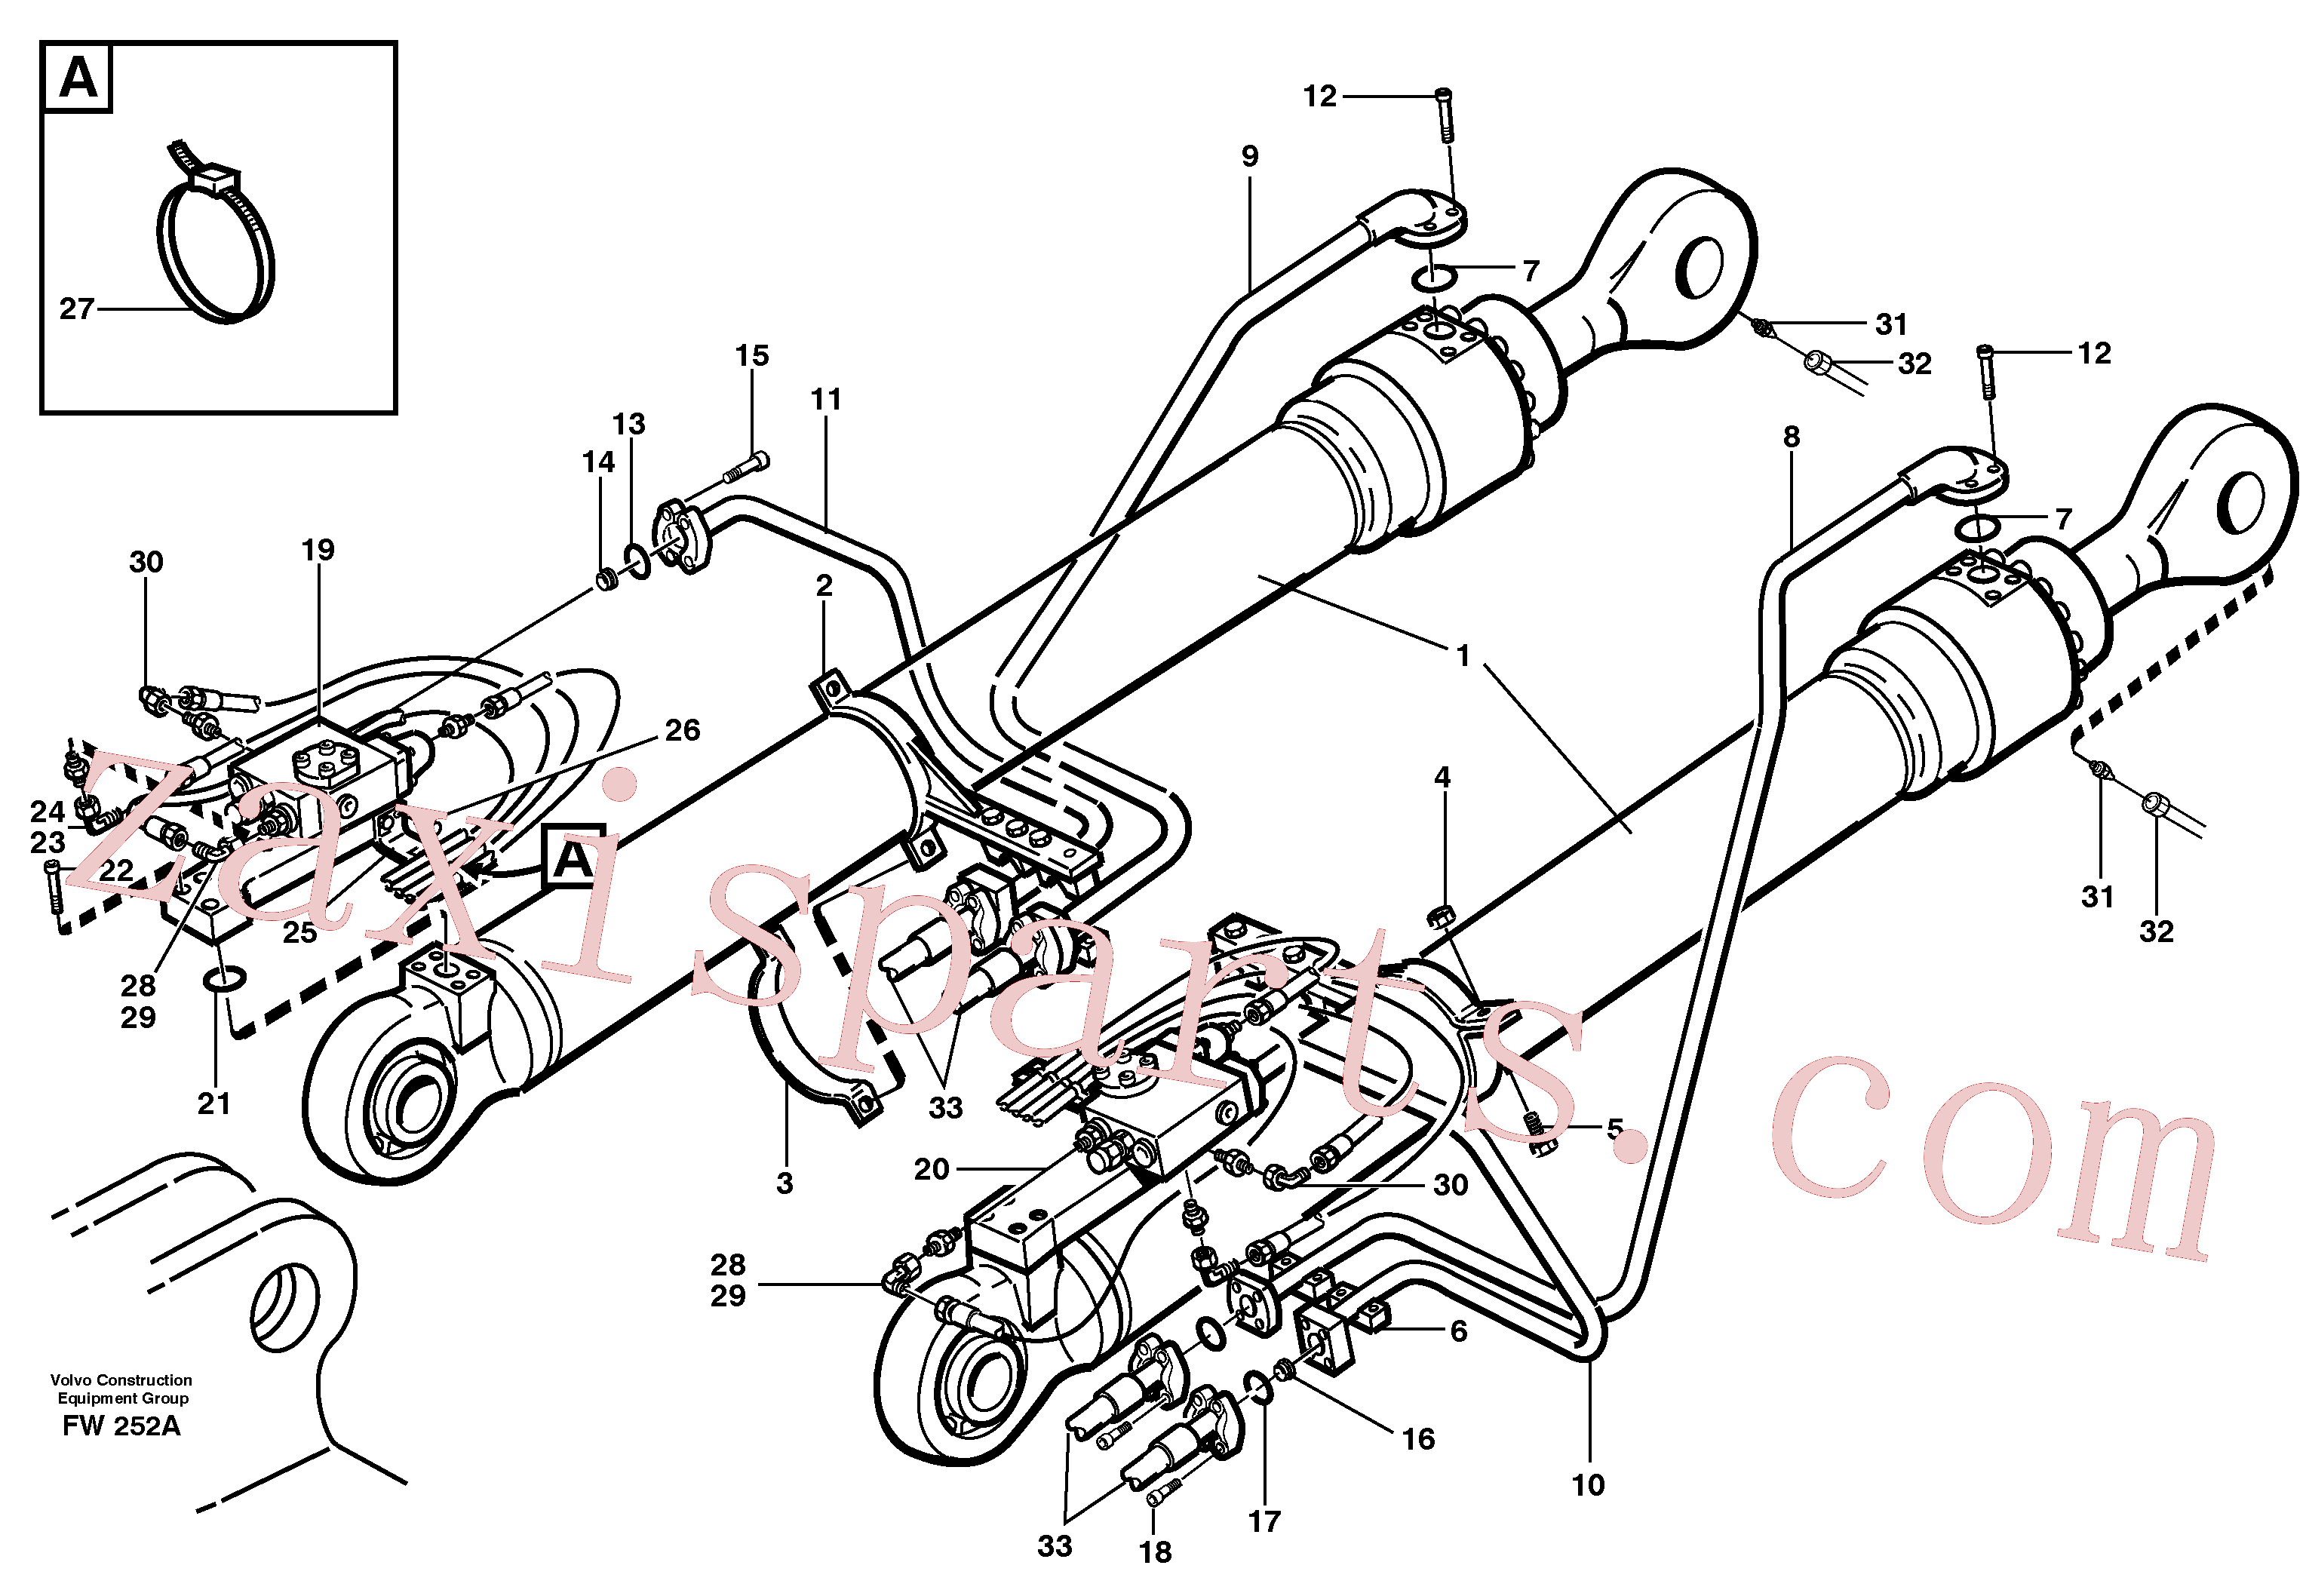 VOE14341408 for Volvo Cylinder hydraulics, backhoe boom(FW252A assembly)